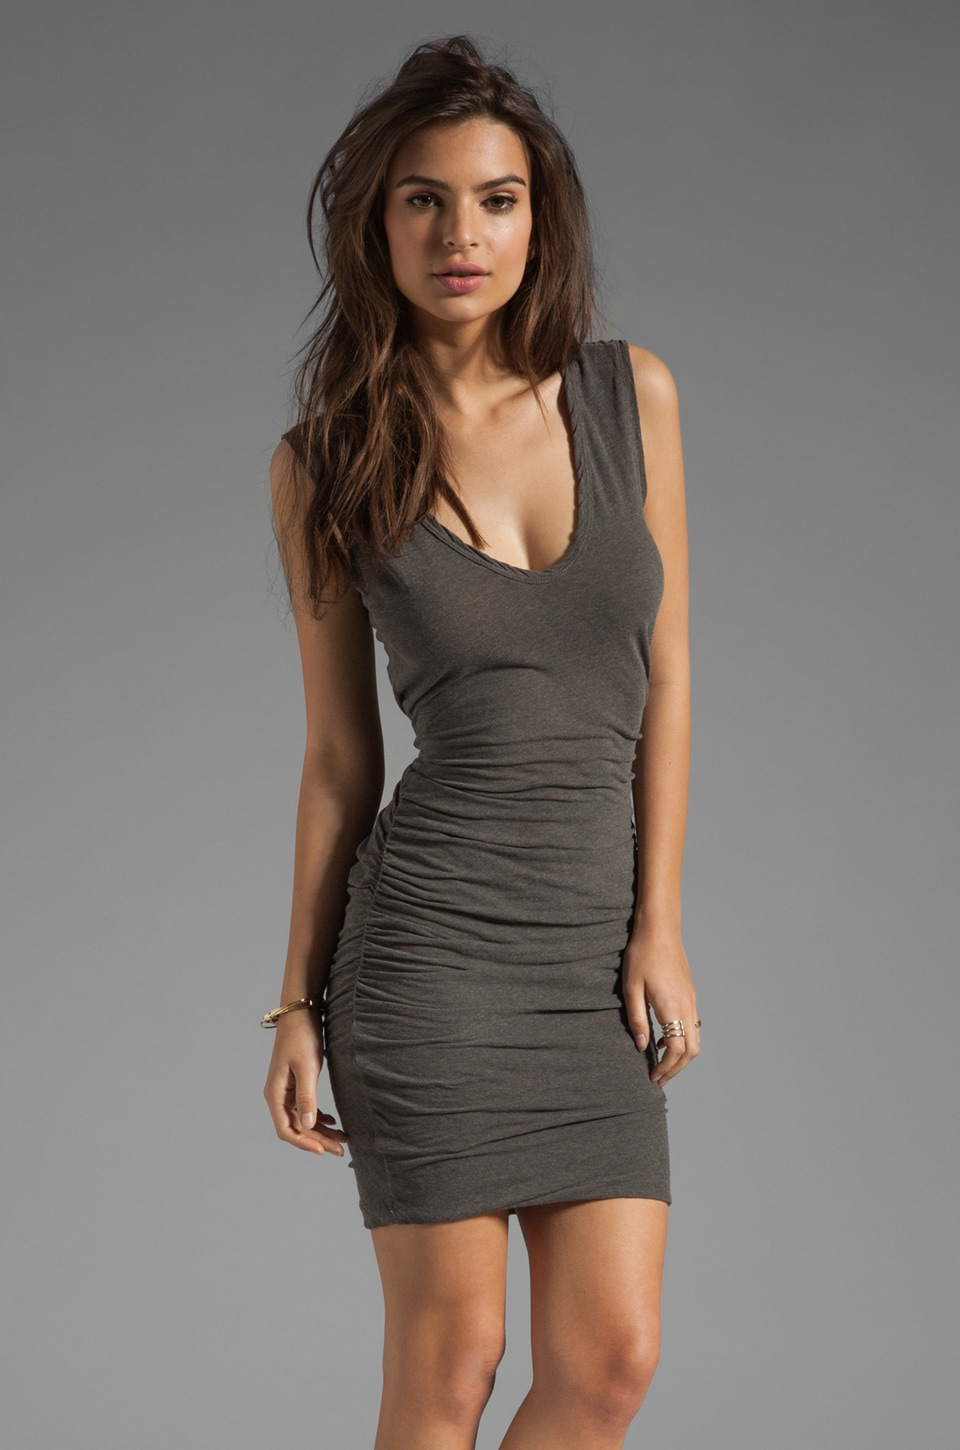 James Perse Double V Dress in Burro